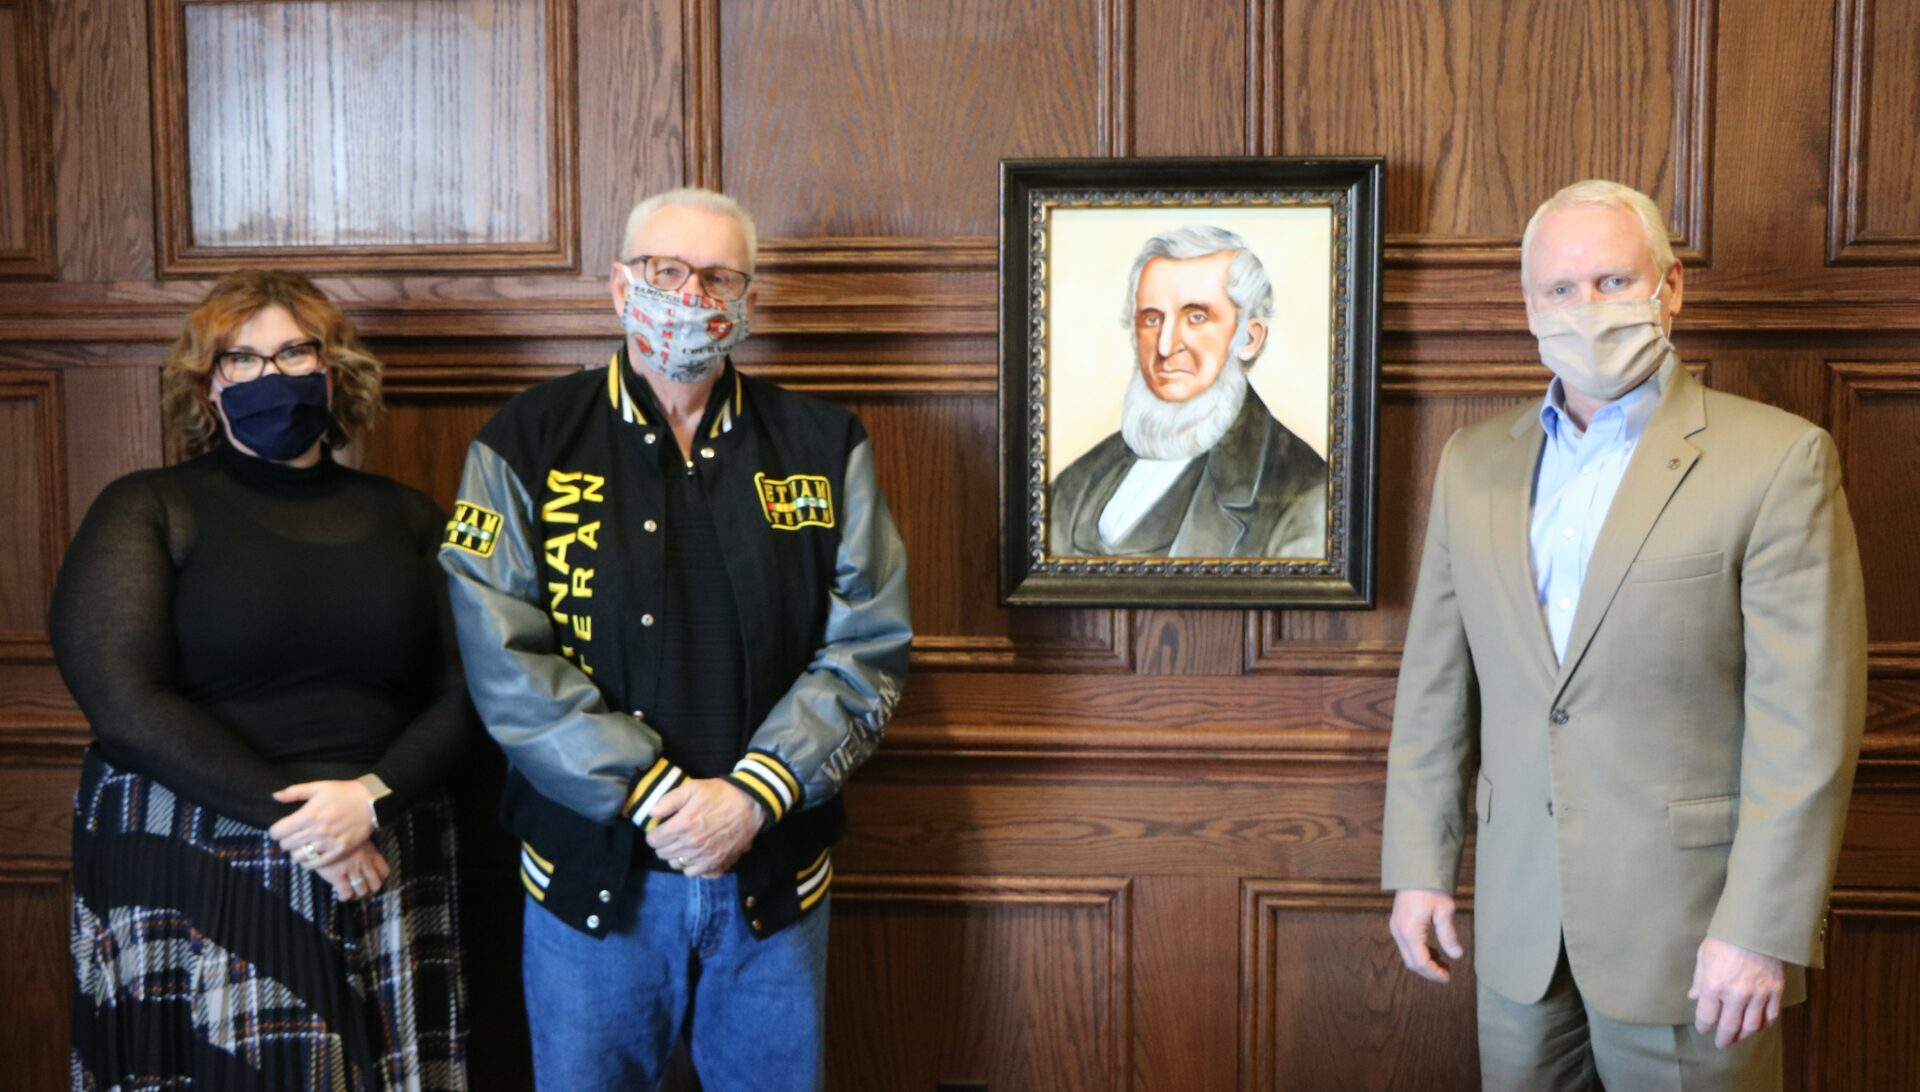 Dan Waggoner poses with his portrait of John Wood. the man